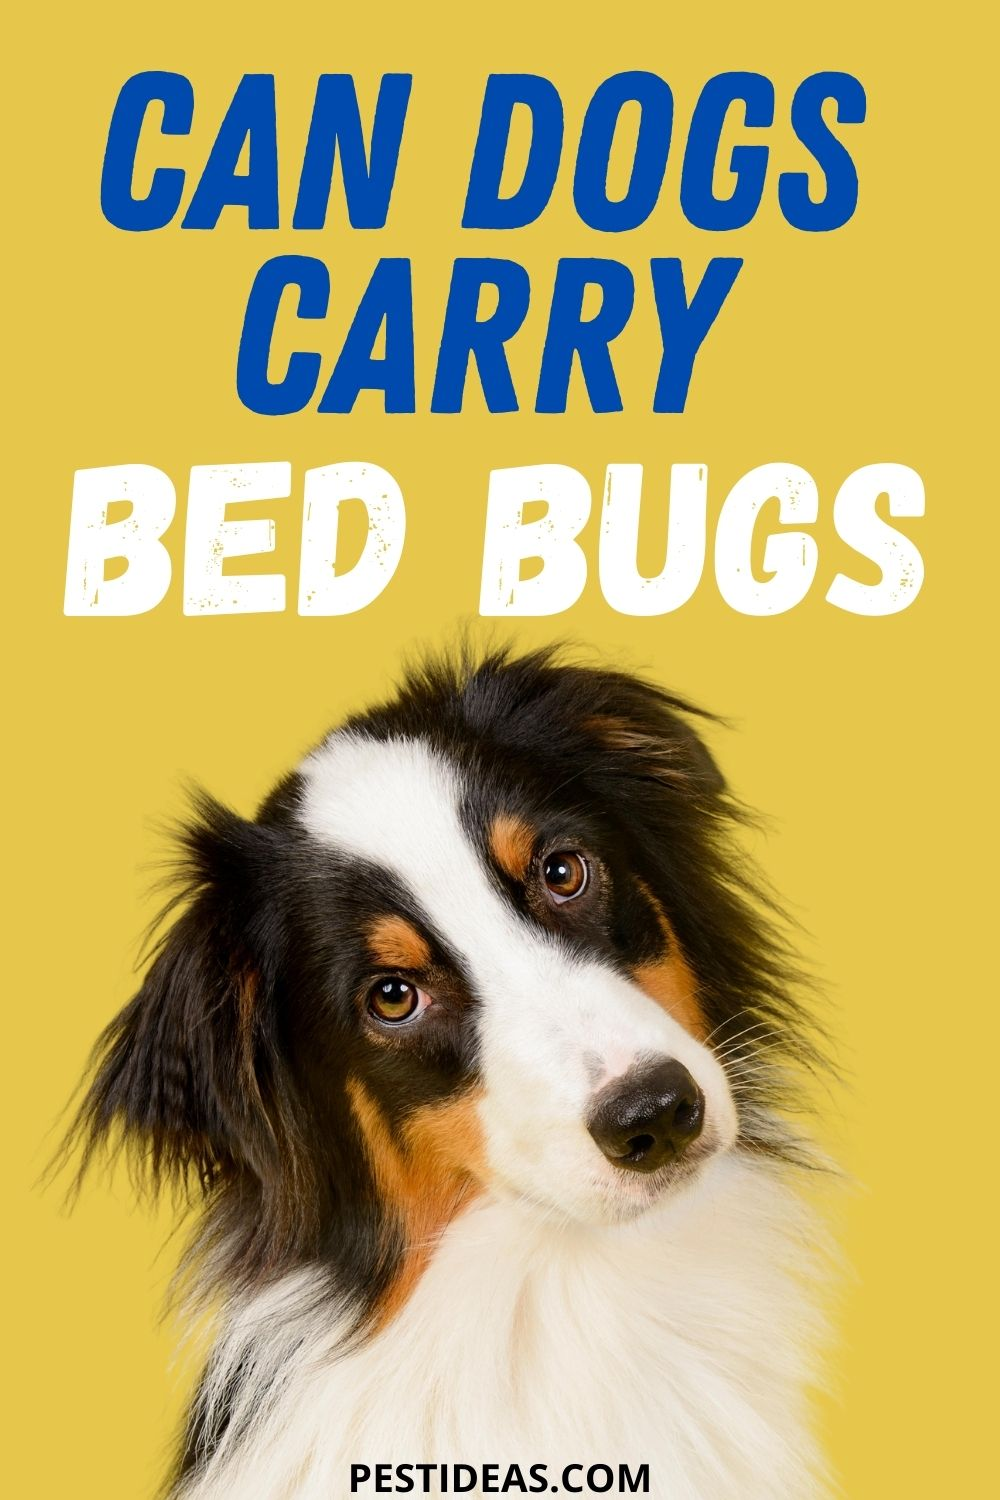 Can Dogs Carry Bed Bugs